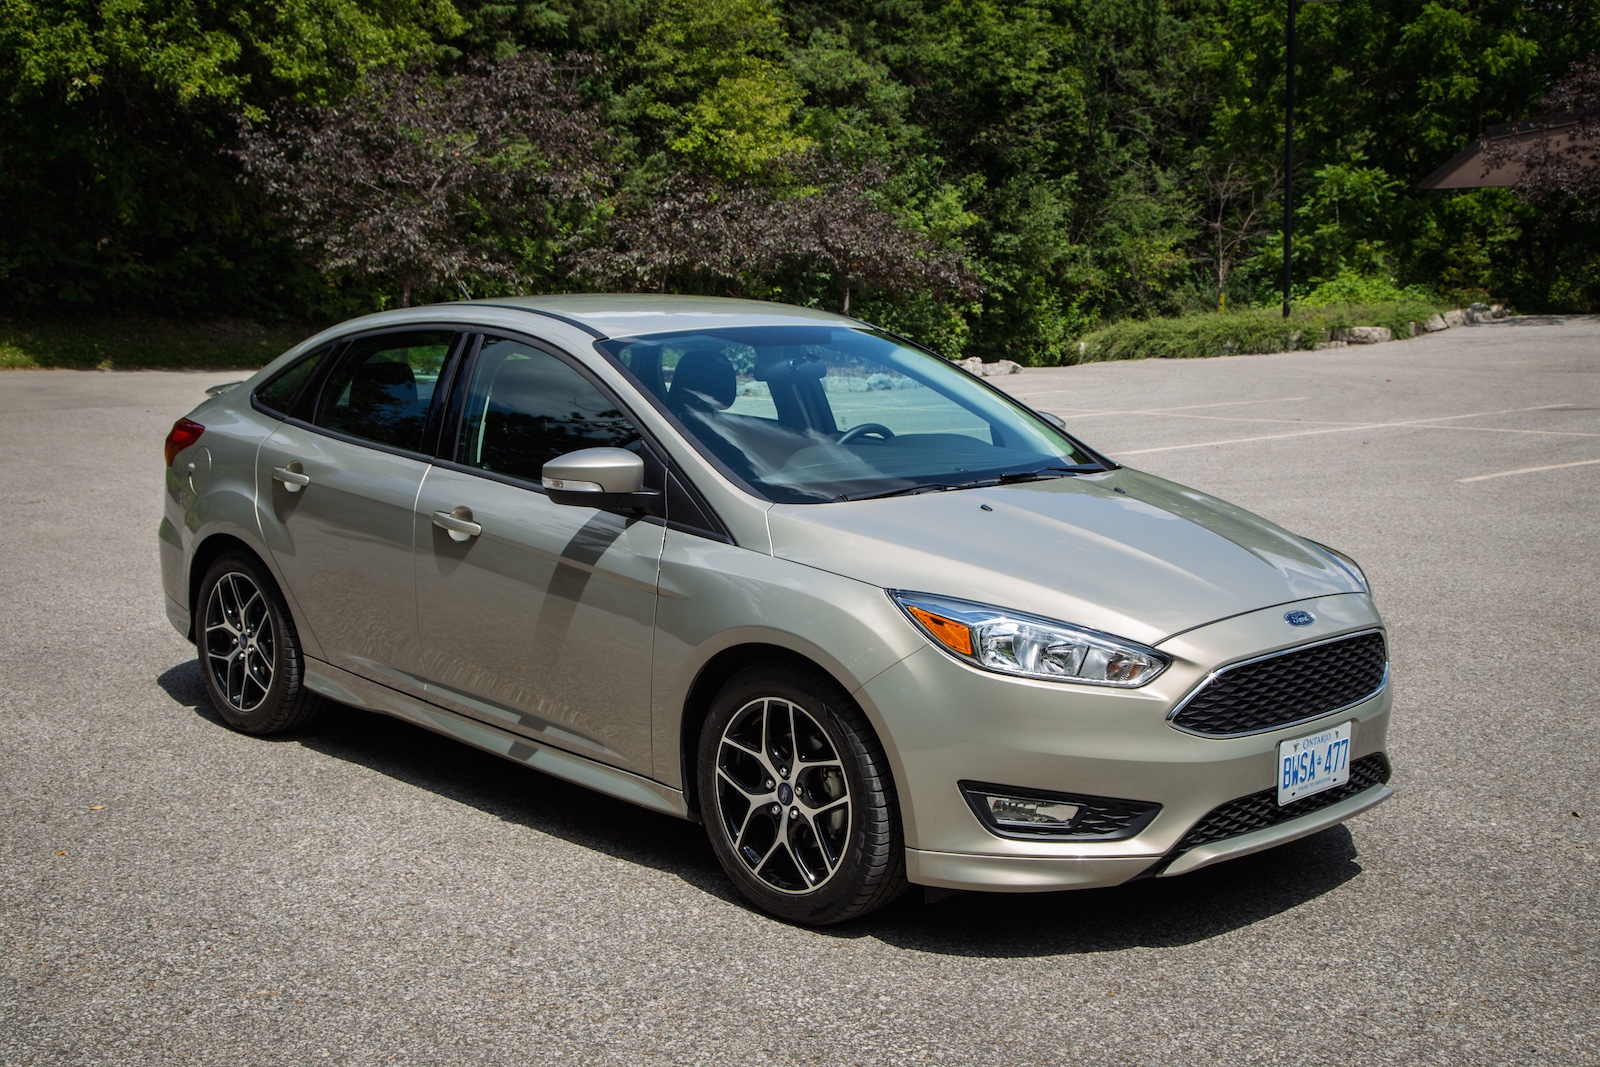 2017 Ford Fusion 2 0 Ecoboost >> From 2013 to 2016, difference? - Ford Focus Forum, Ford Focus ST Forum, Ford Focus RS Forum